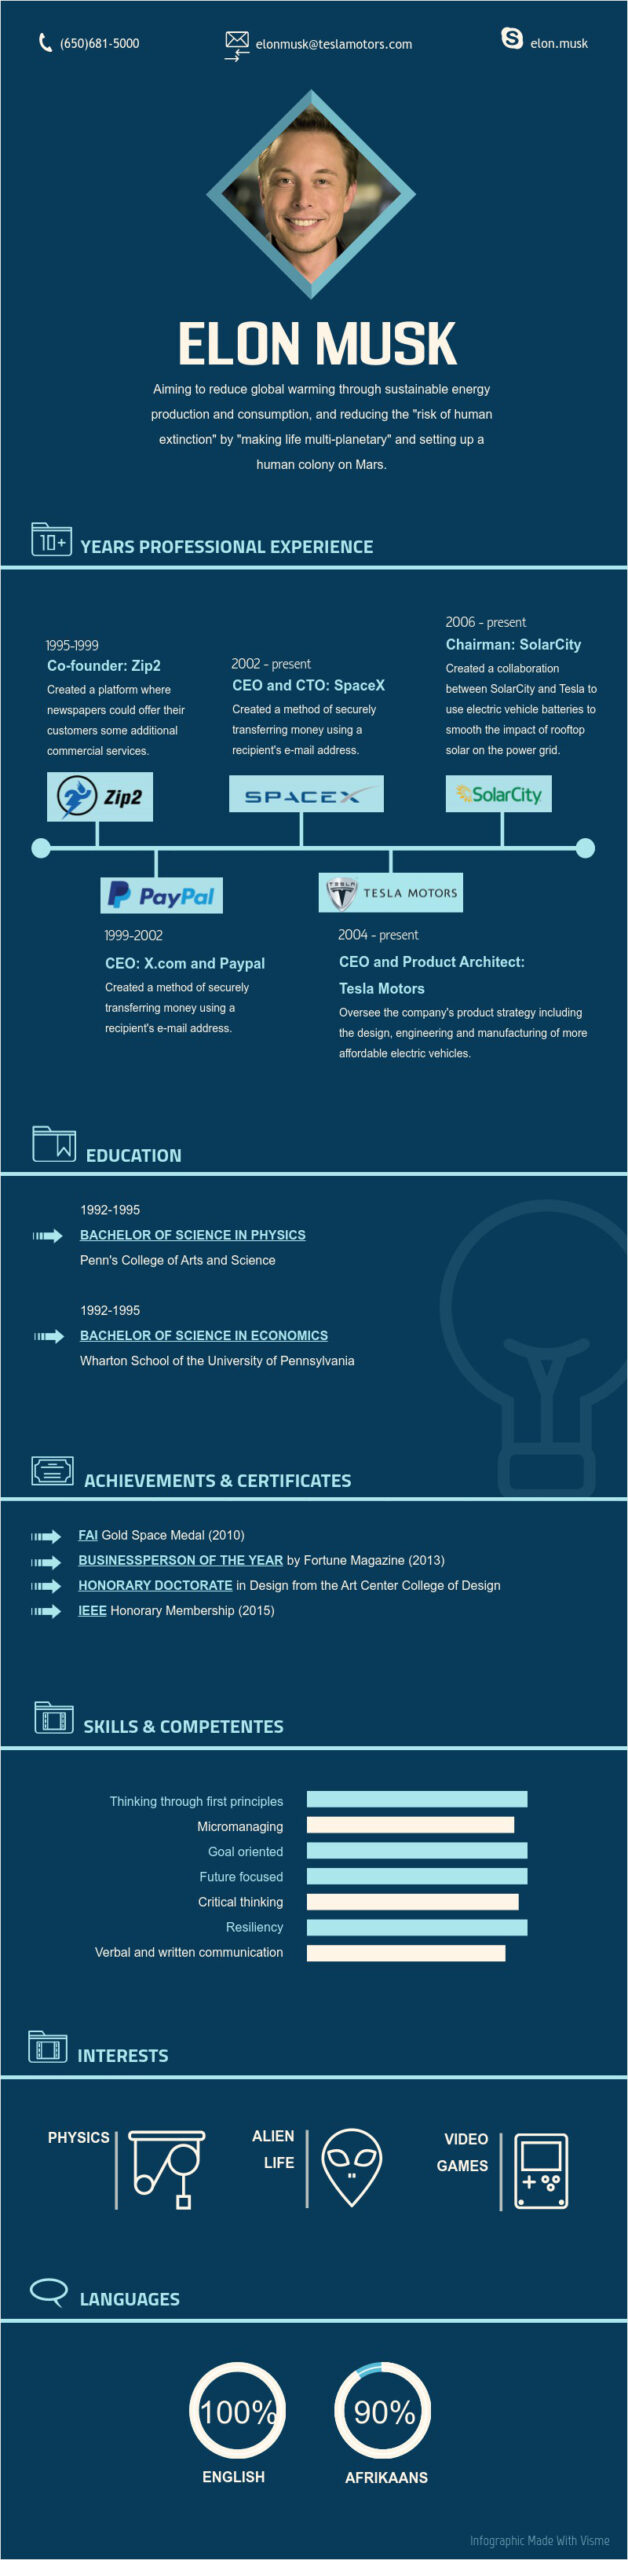 to create your own visual resume easy free elon musk template eon after fresher graphic Resume Elon Musk Resume Template Free Download